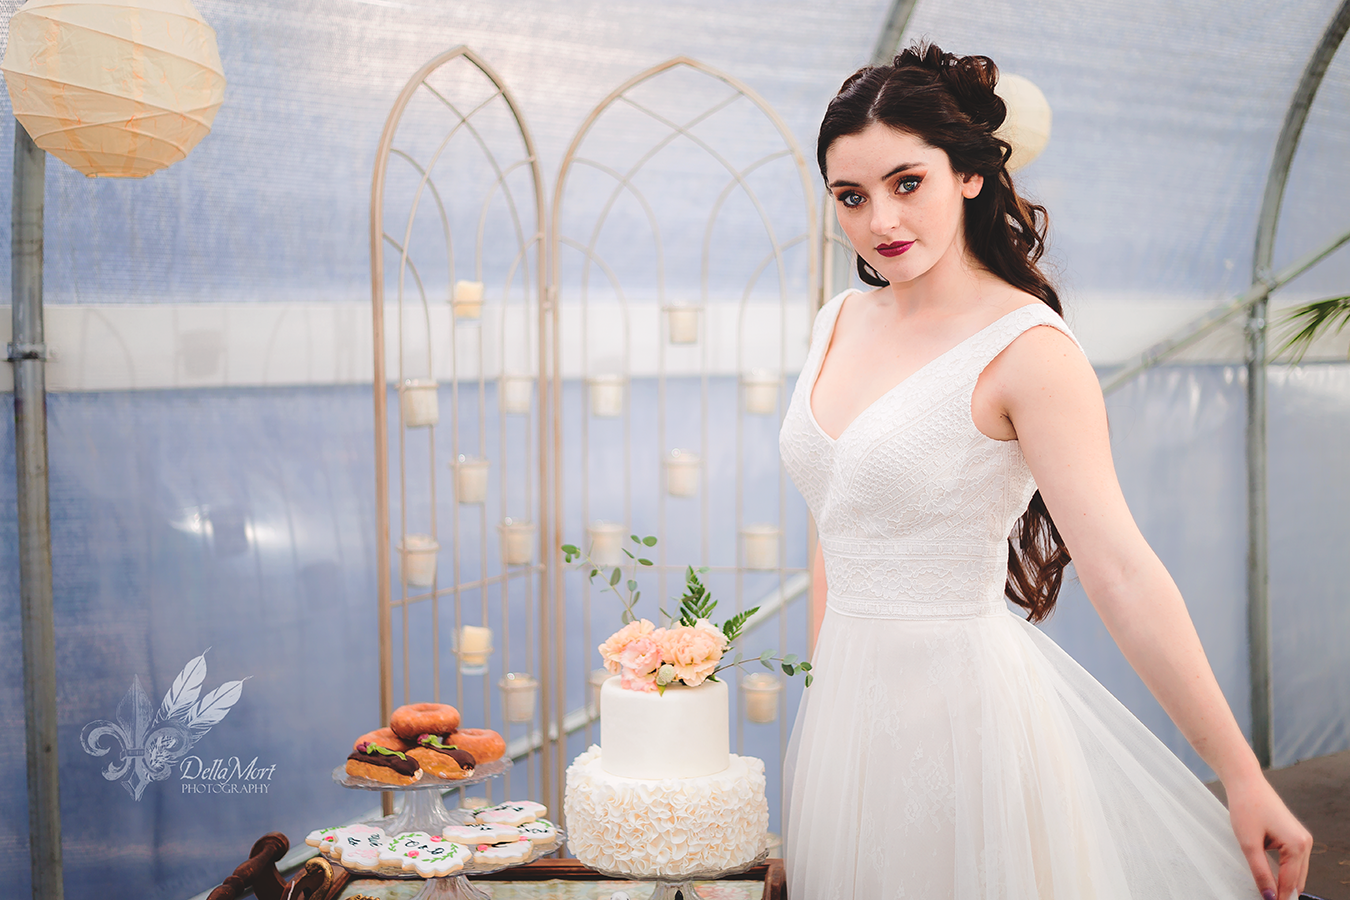 Wedding Styled Shoot By Dellamort Photography In Portland Oregon Dress By Heavenly Bridal Cake By Cakes By Laura Llc Cook Wedding Bridal Wedding Photography